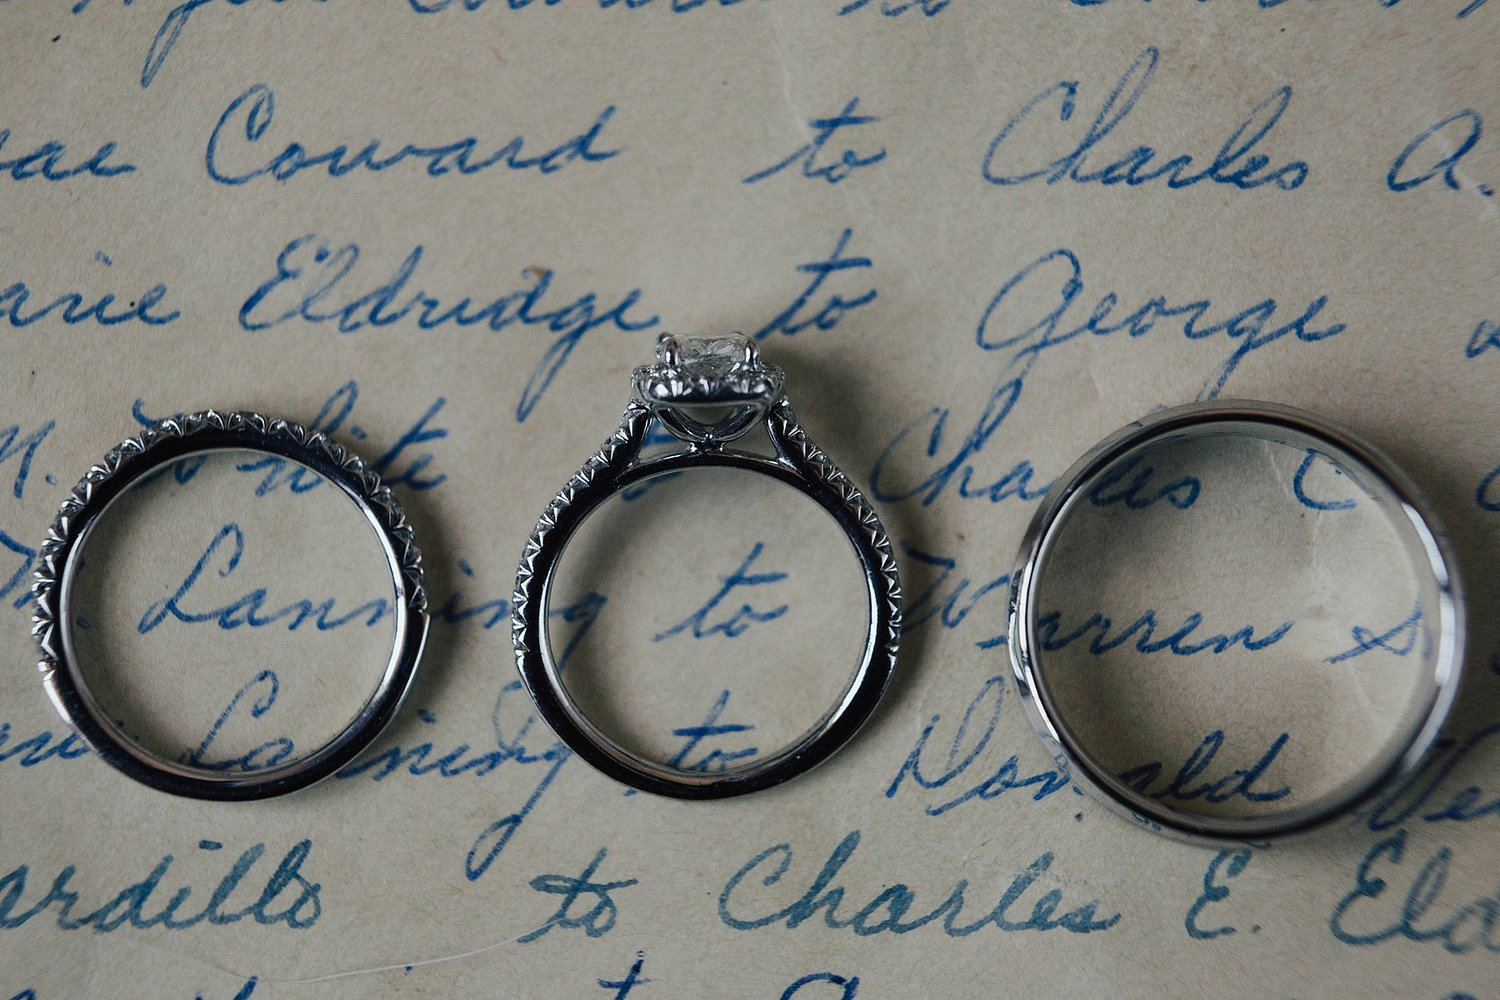 Three wedding rings placed over a handwritten letter